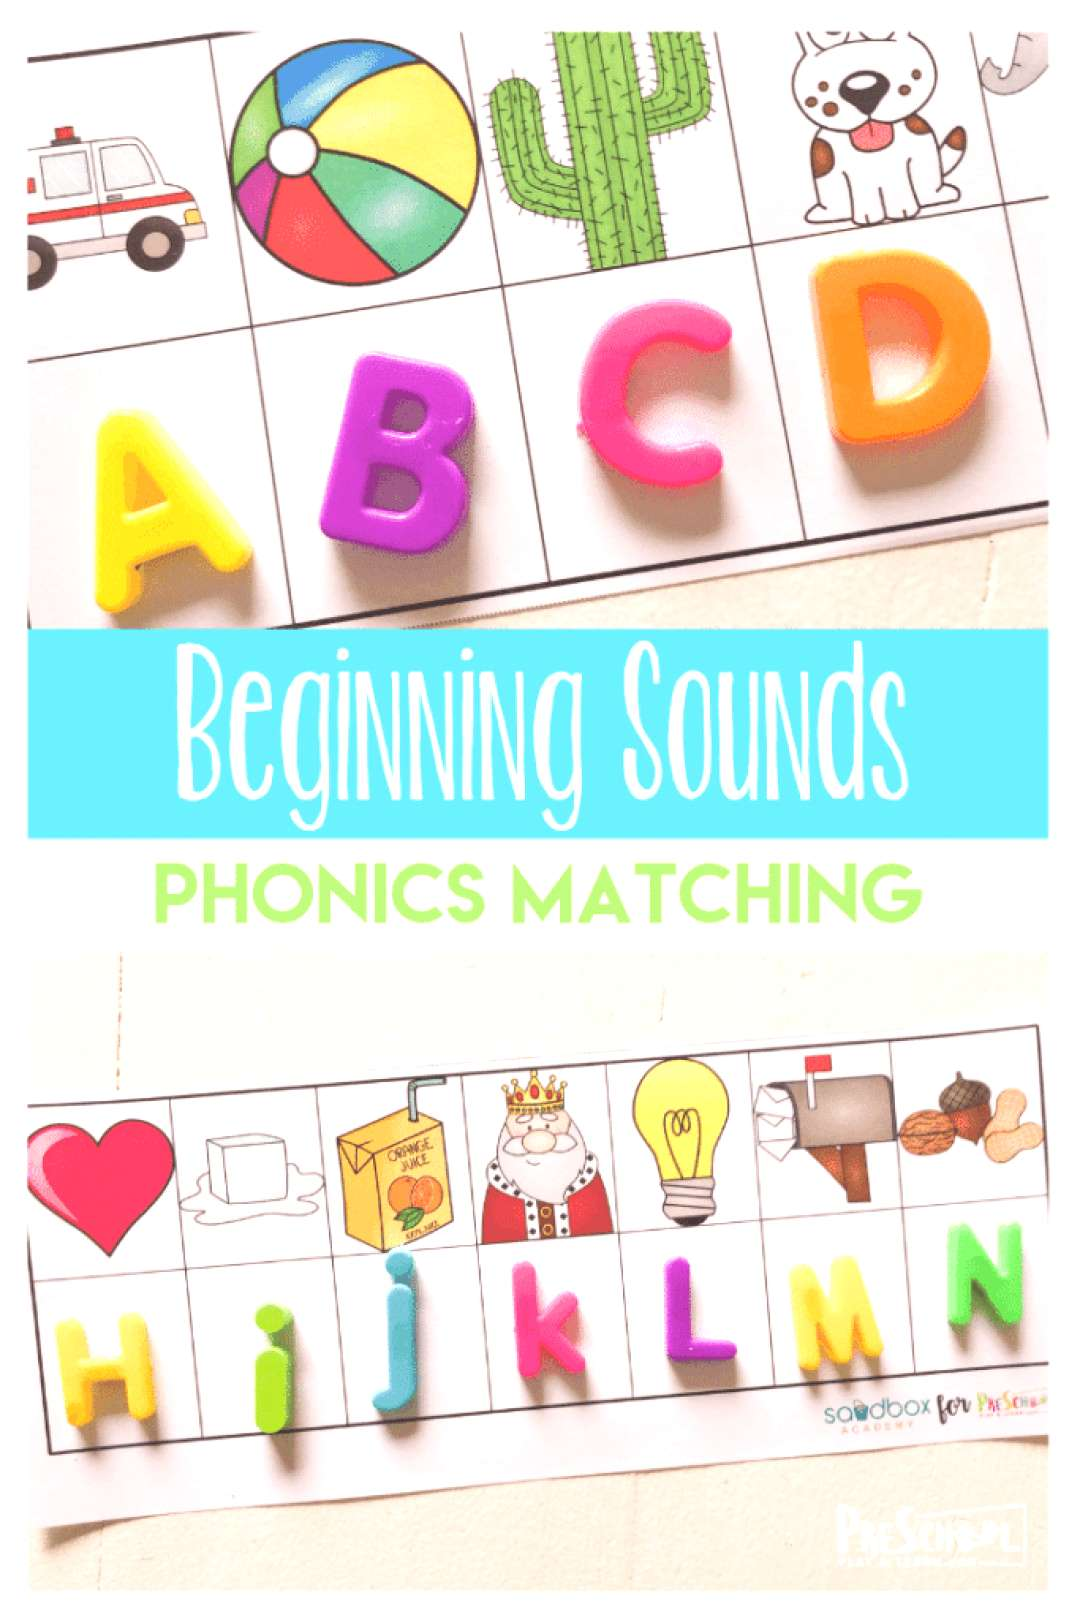 FREE Beginning Sounds Phonics Game - preschoolers will have fun using magnetic letters to practice